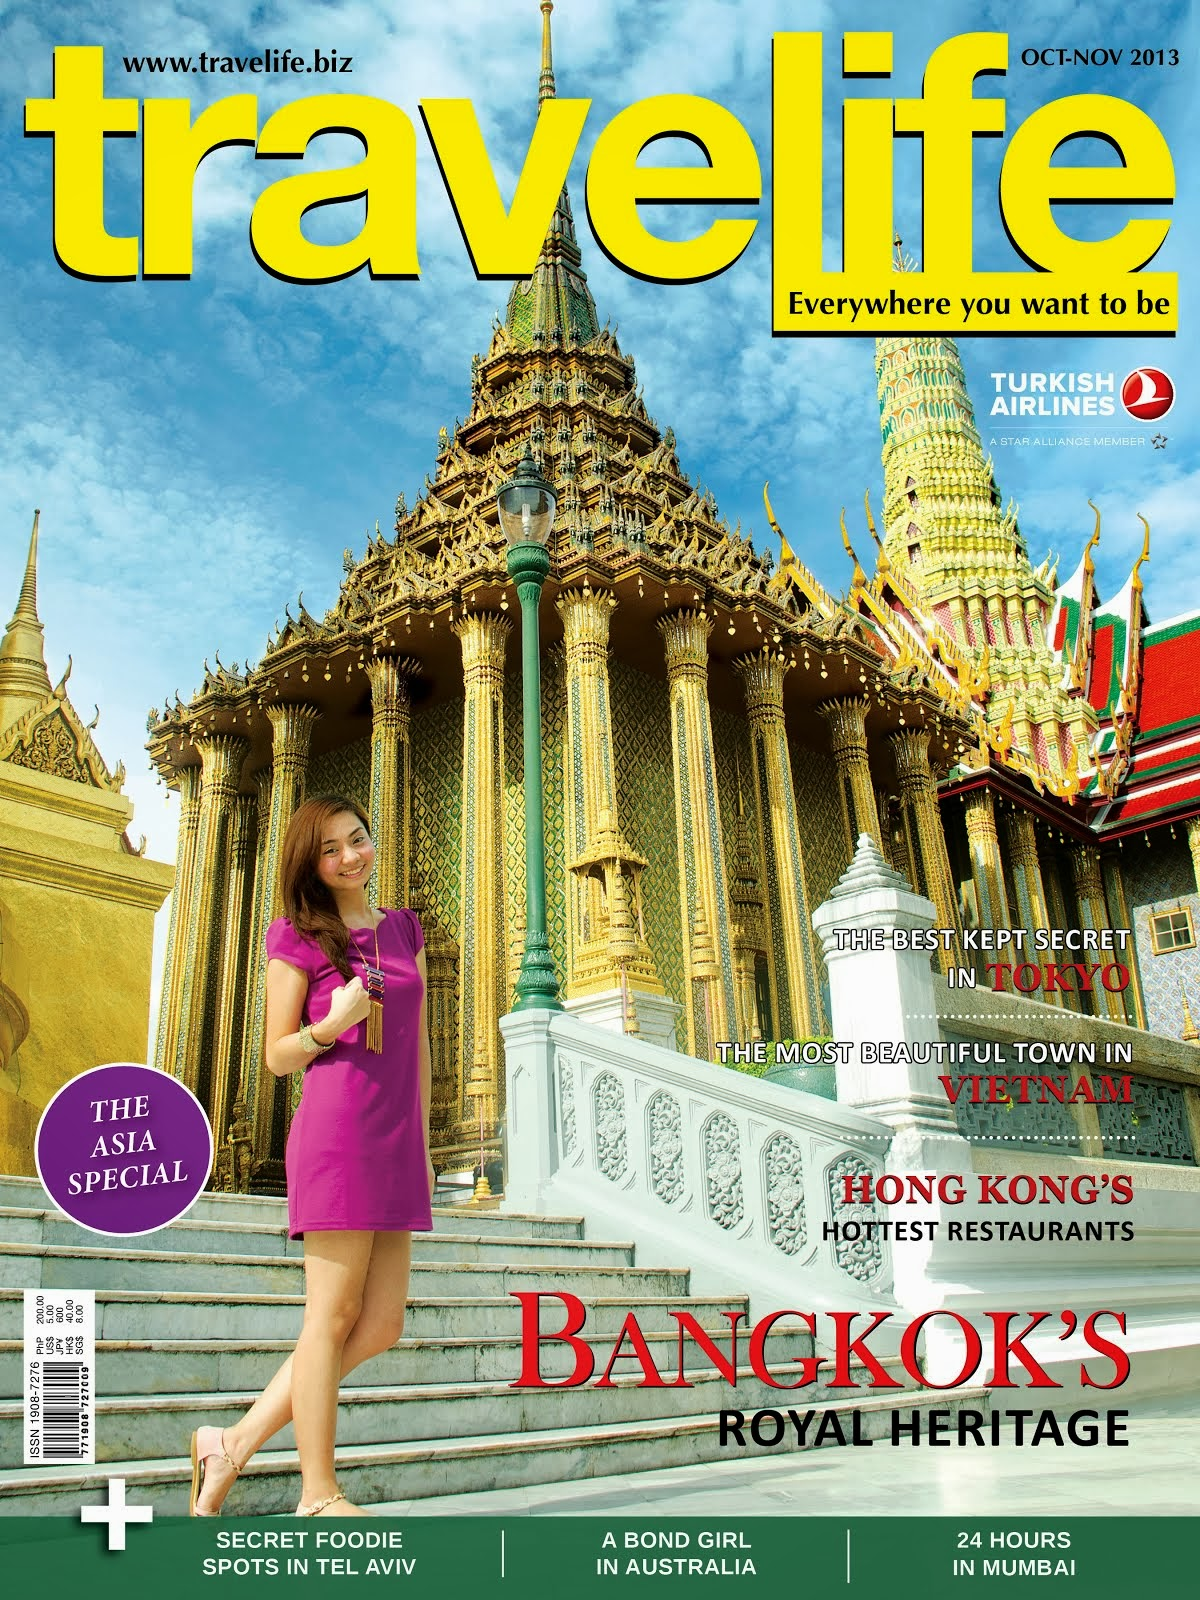 TRAVELIFE'S OCT-NOV 2013 ISSUE